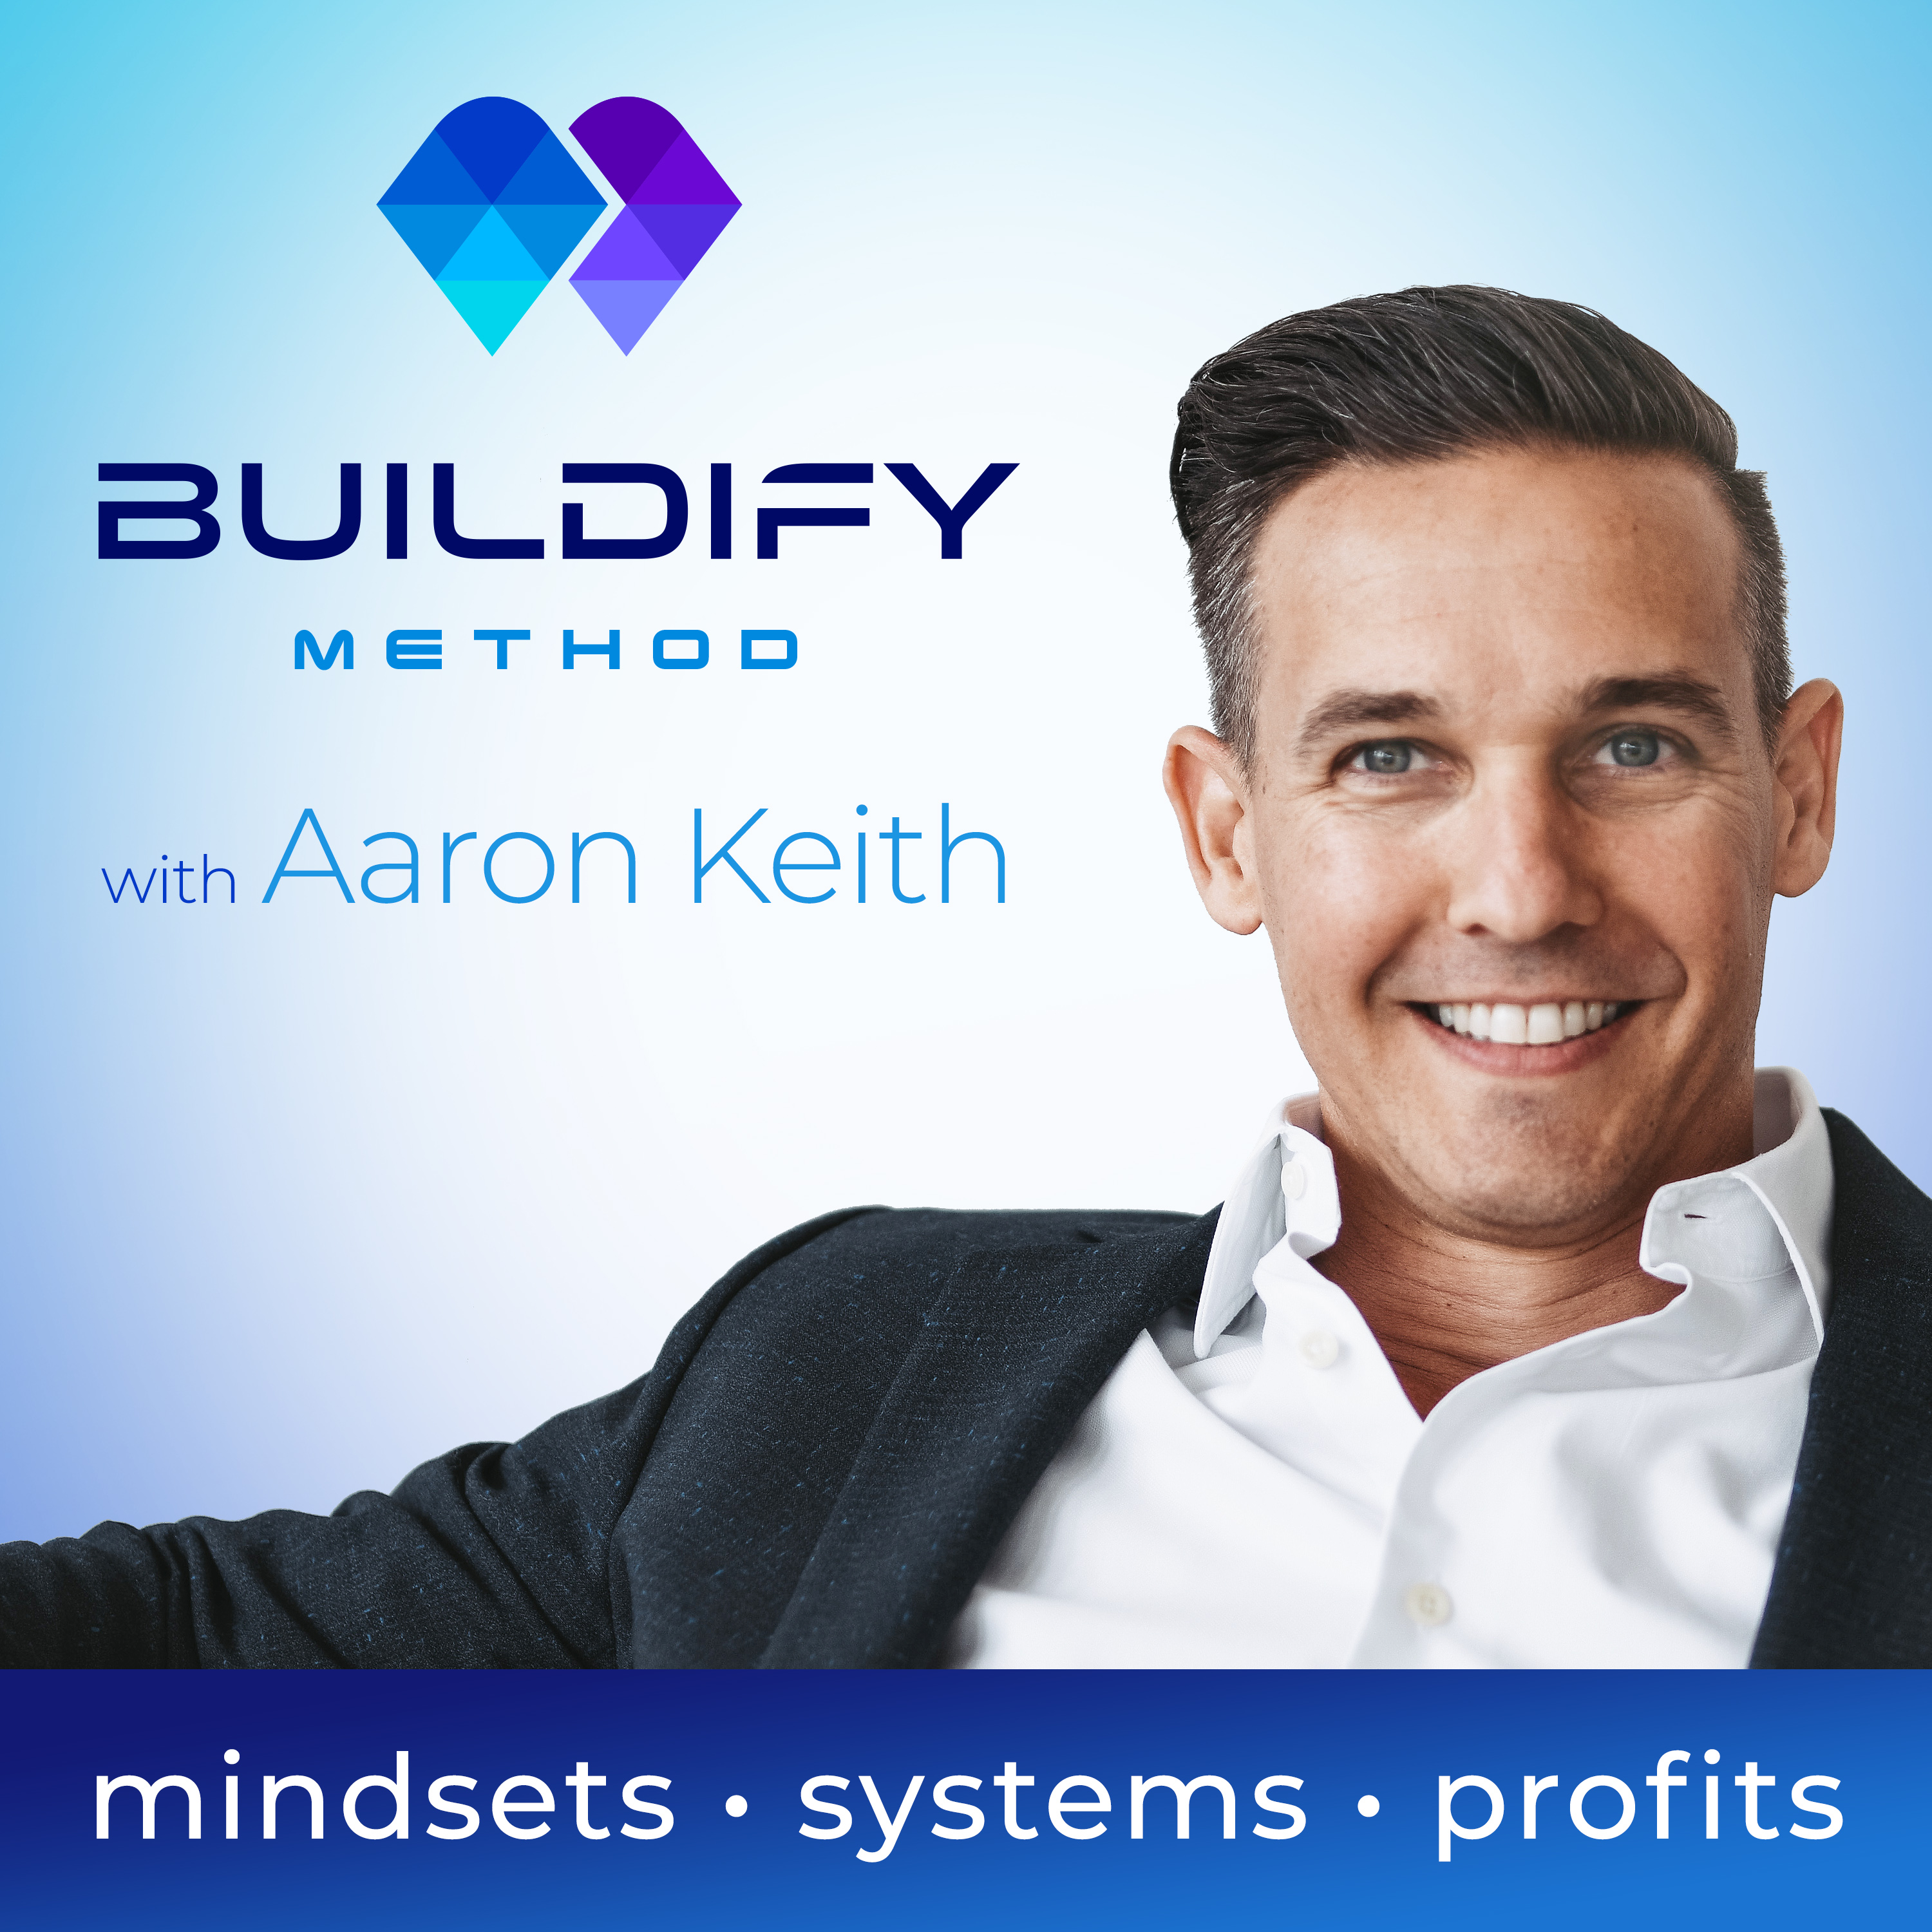 The Buildify Method